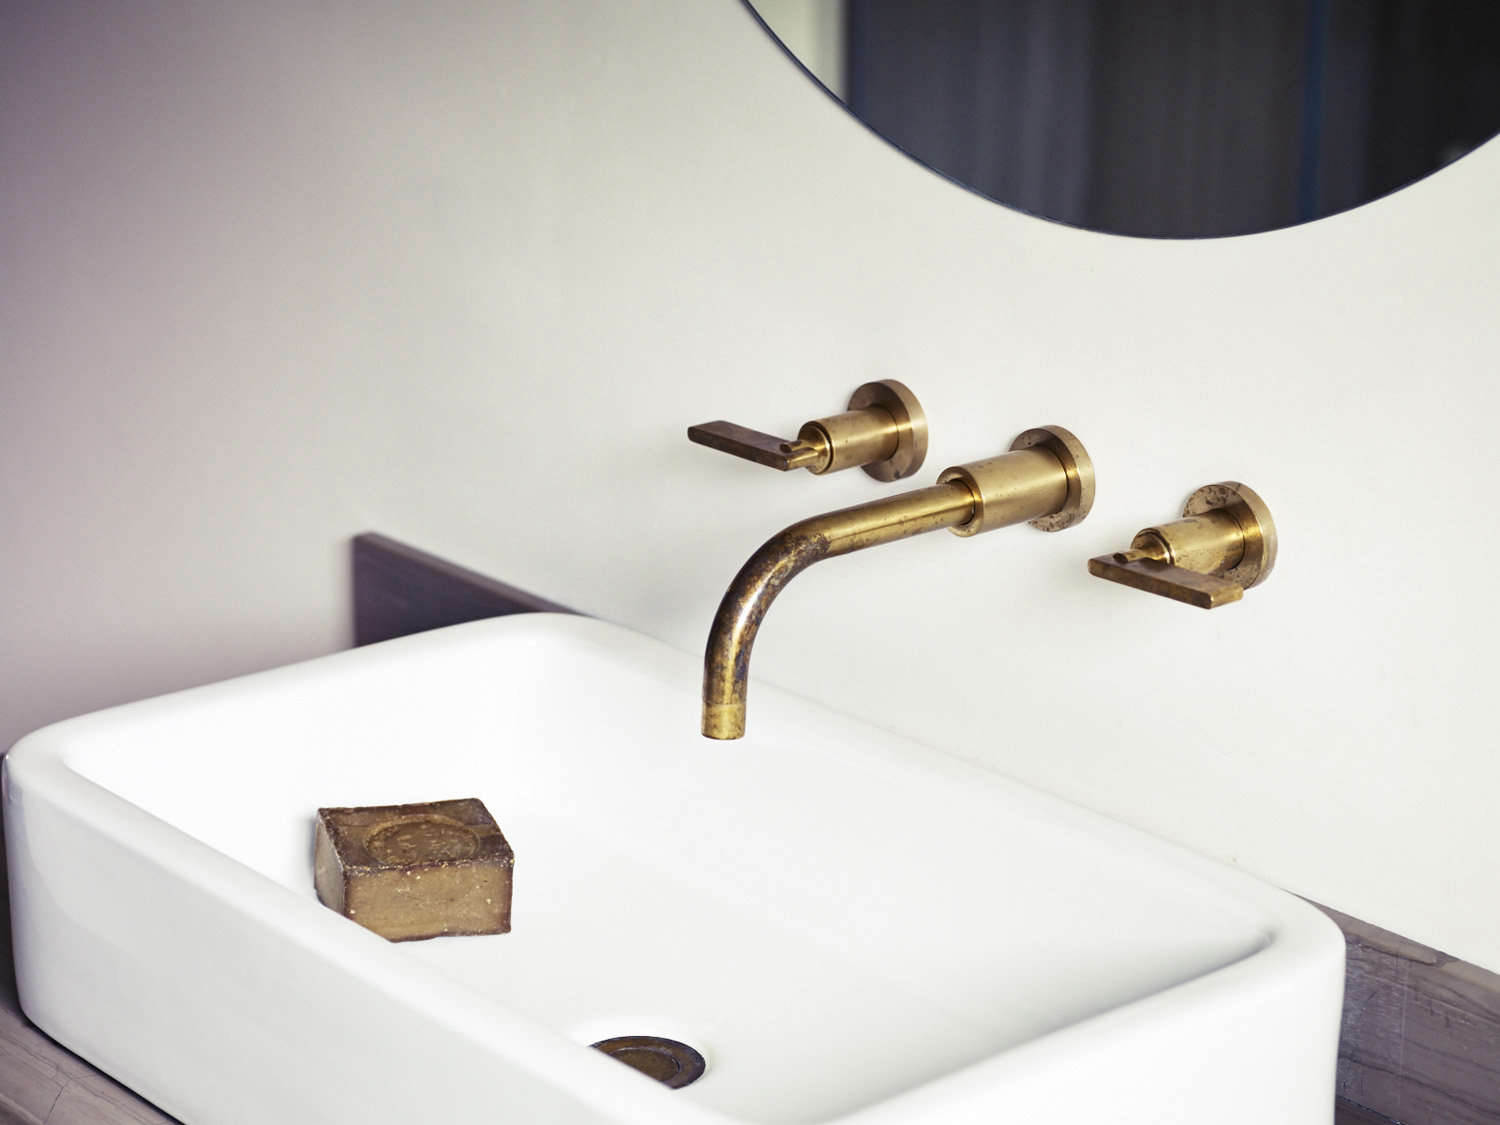 Handmade Faucets And Taps From Studio Ore In England